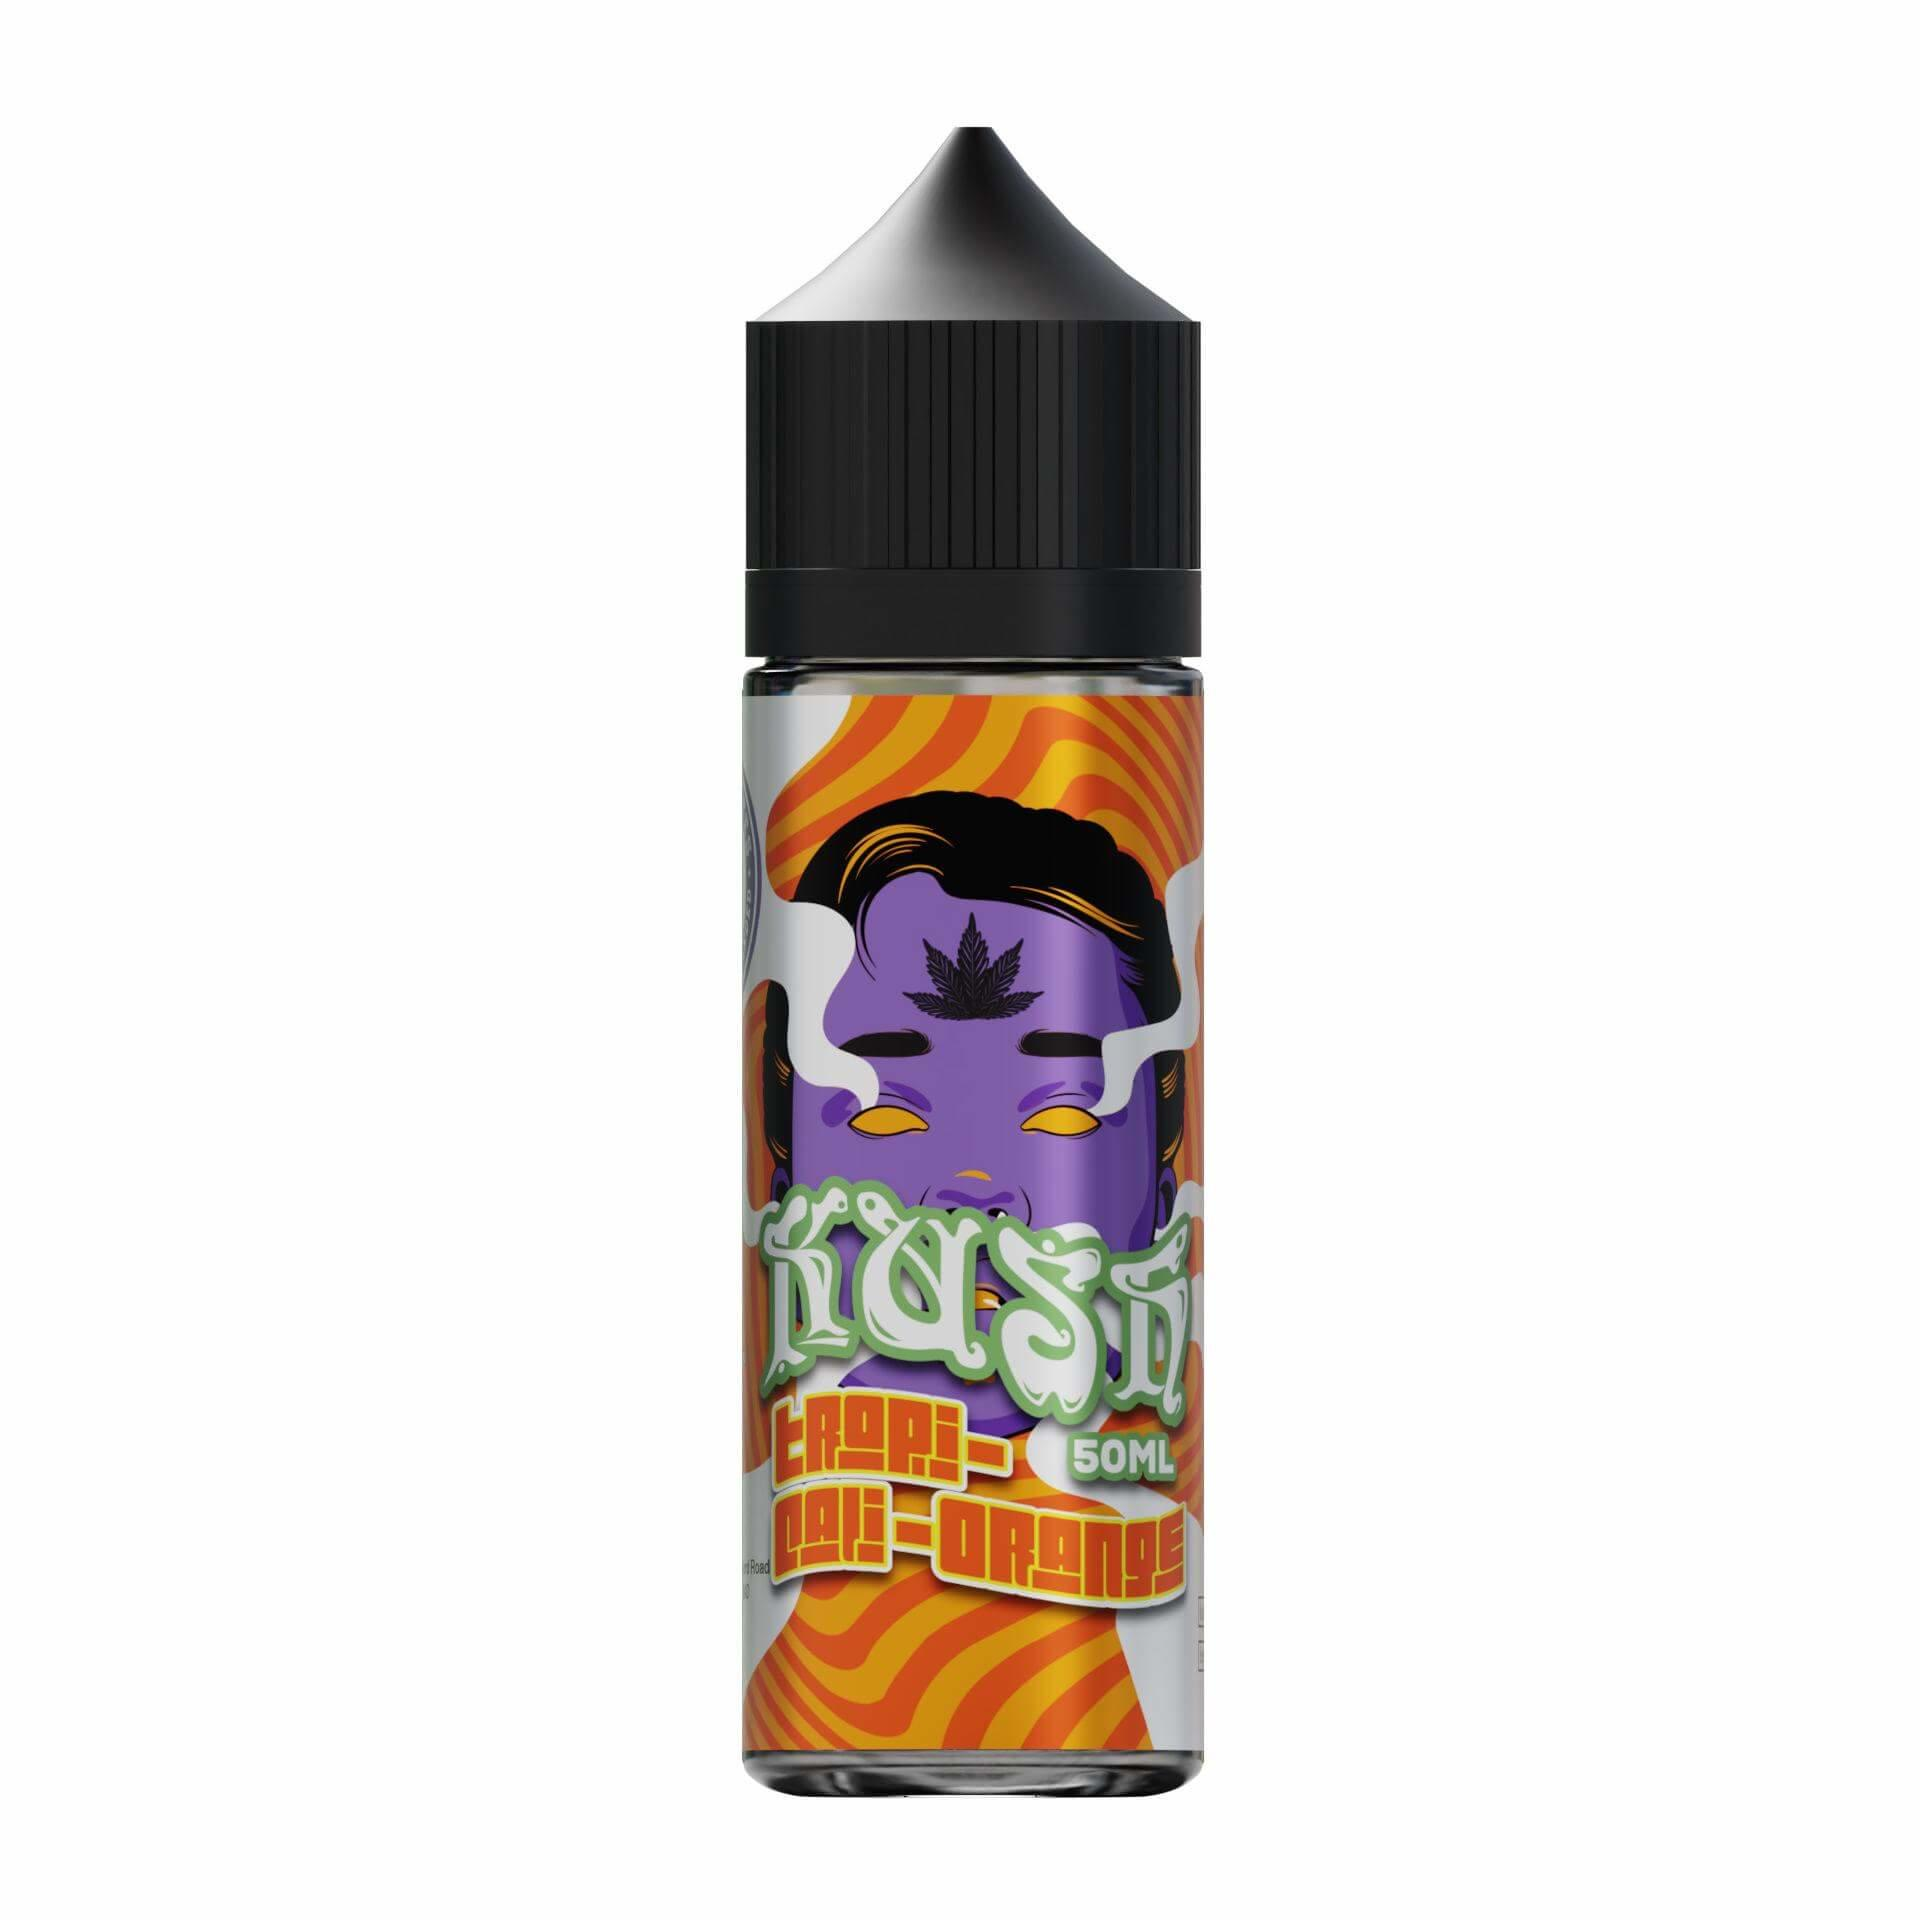 Tropi Cali Orange Tangie Kush Range 0mg Short Fill E Liquid